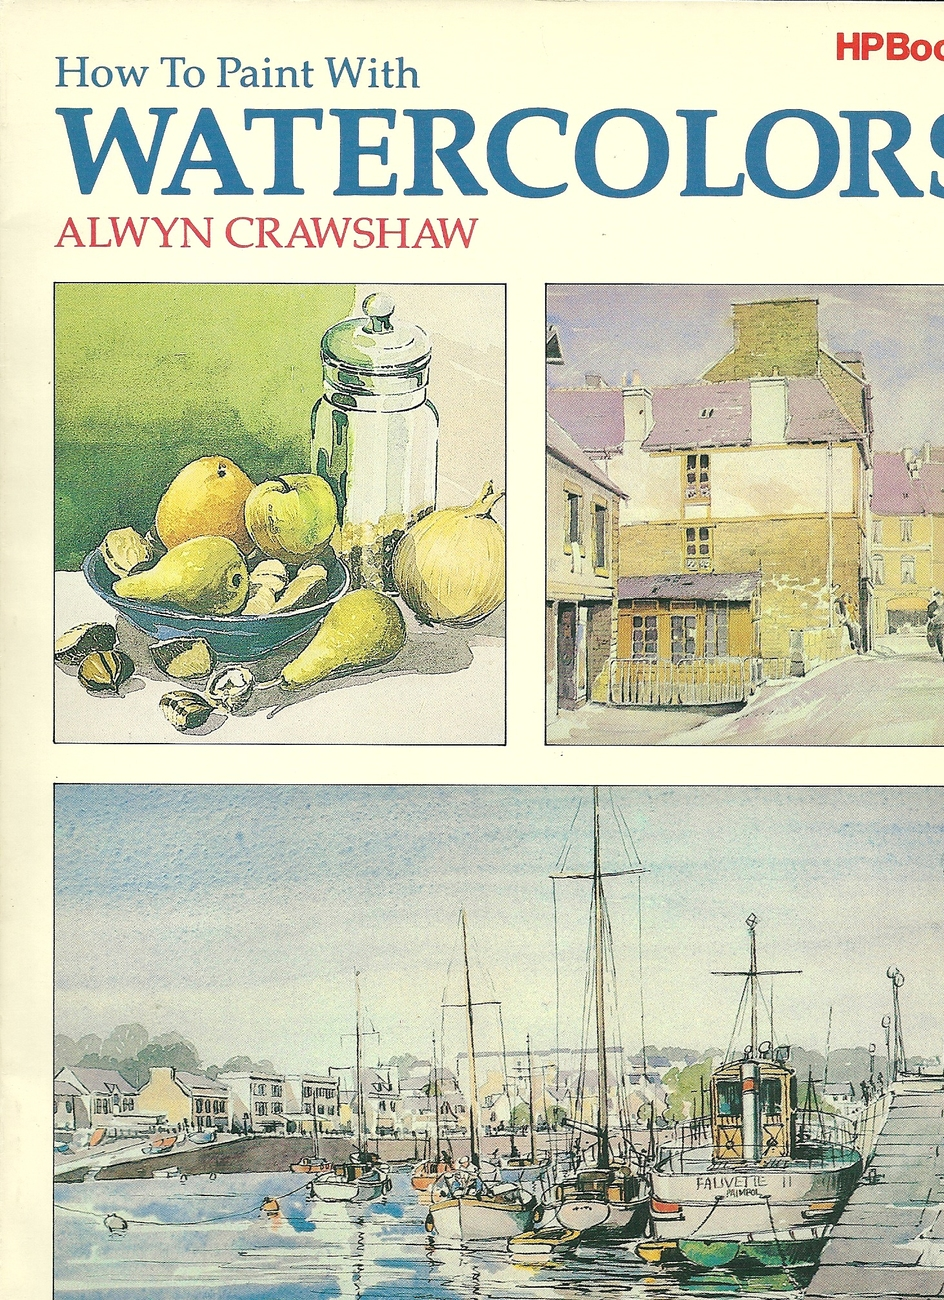 1982 How To Paint With Watercolors, Alwyn Crawshaw BOOK image 2